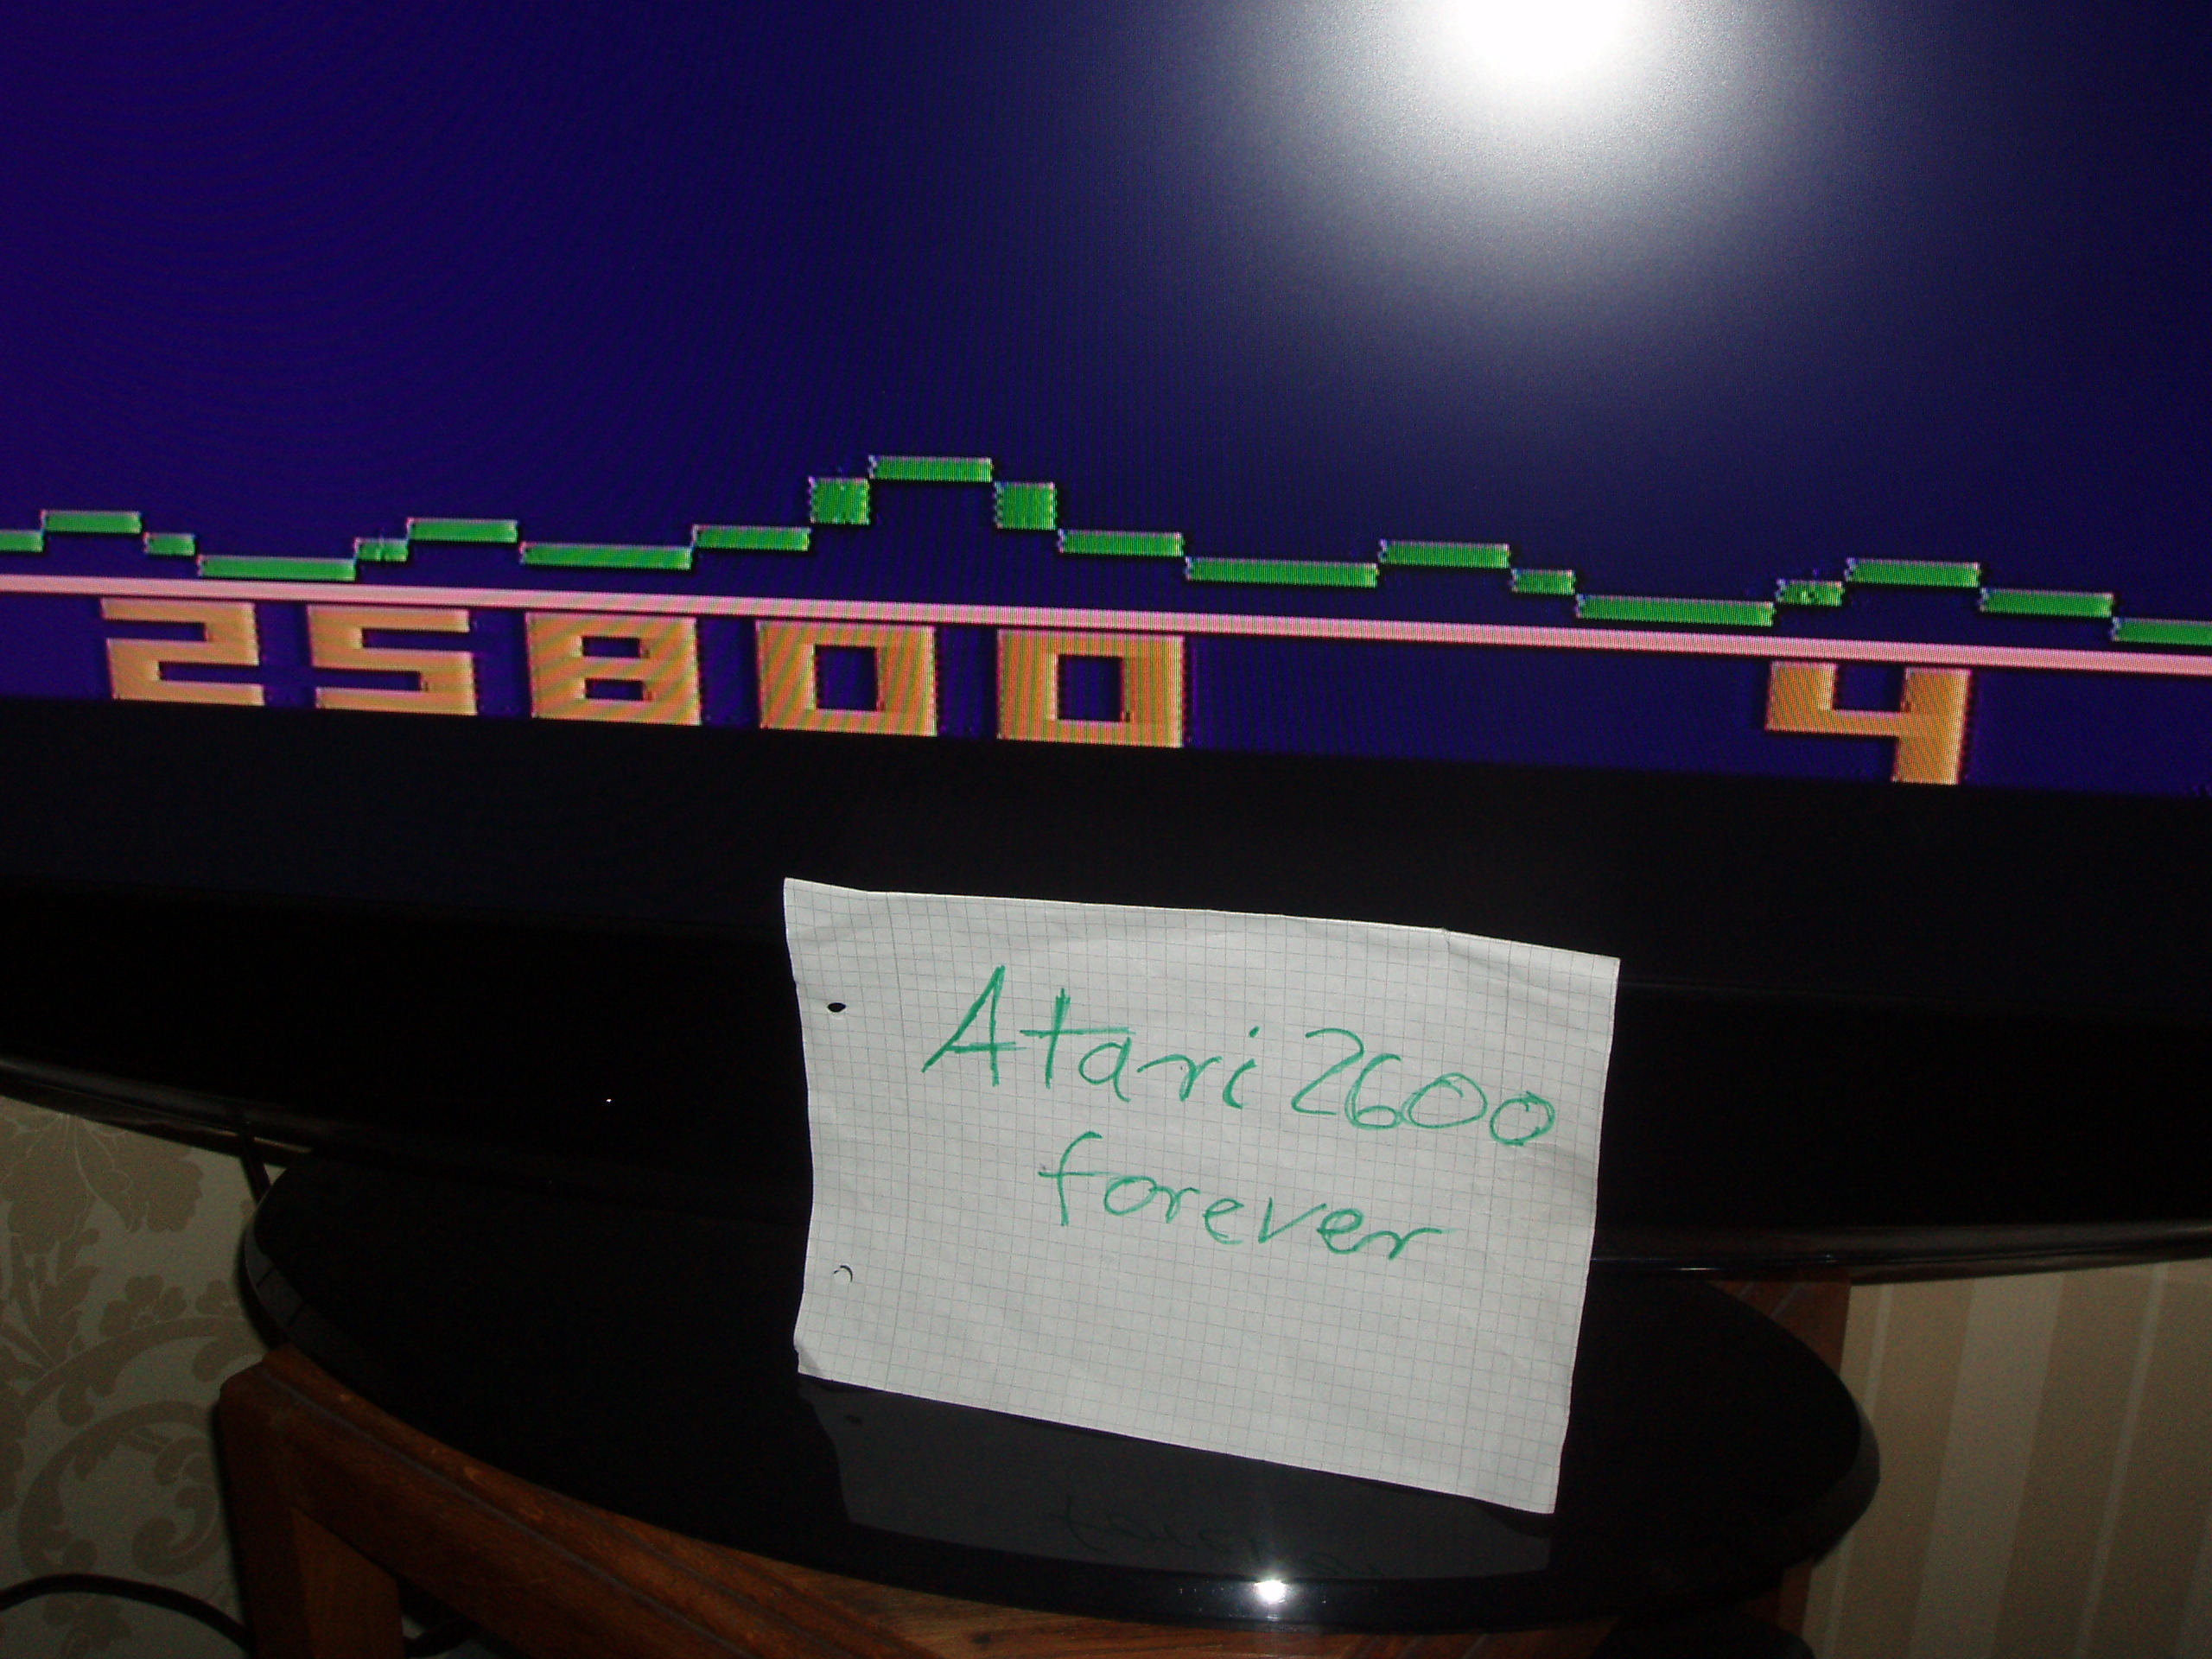 atari2600forever: Astroblast (Atari 2600 Novice/B) 25,800 points on 2016-11-02 04:36:22